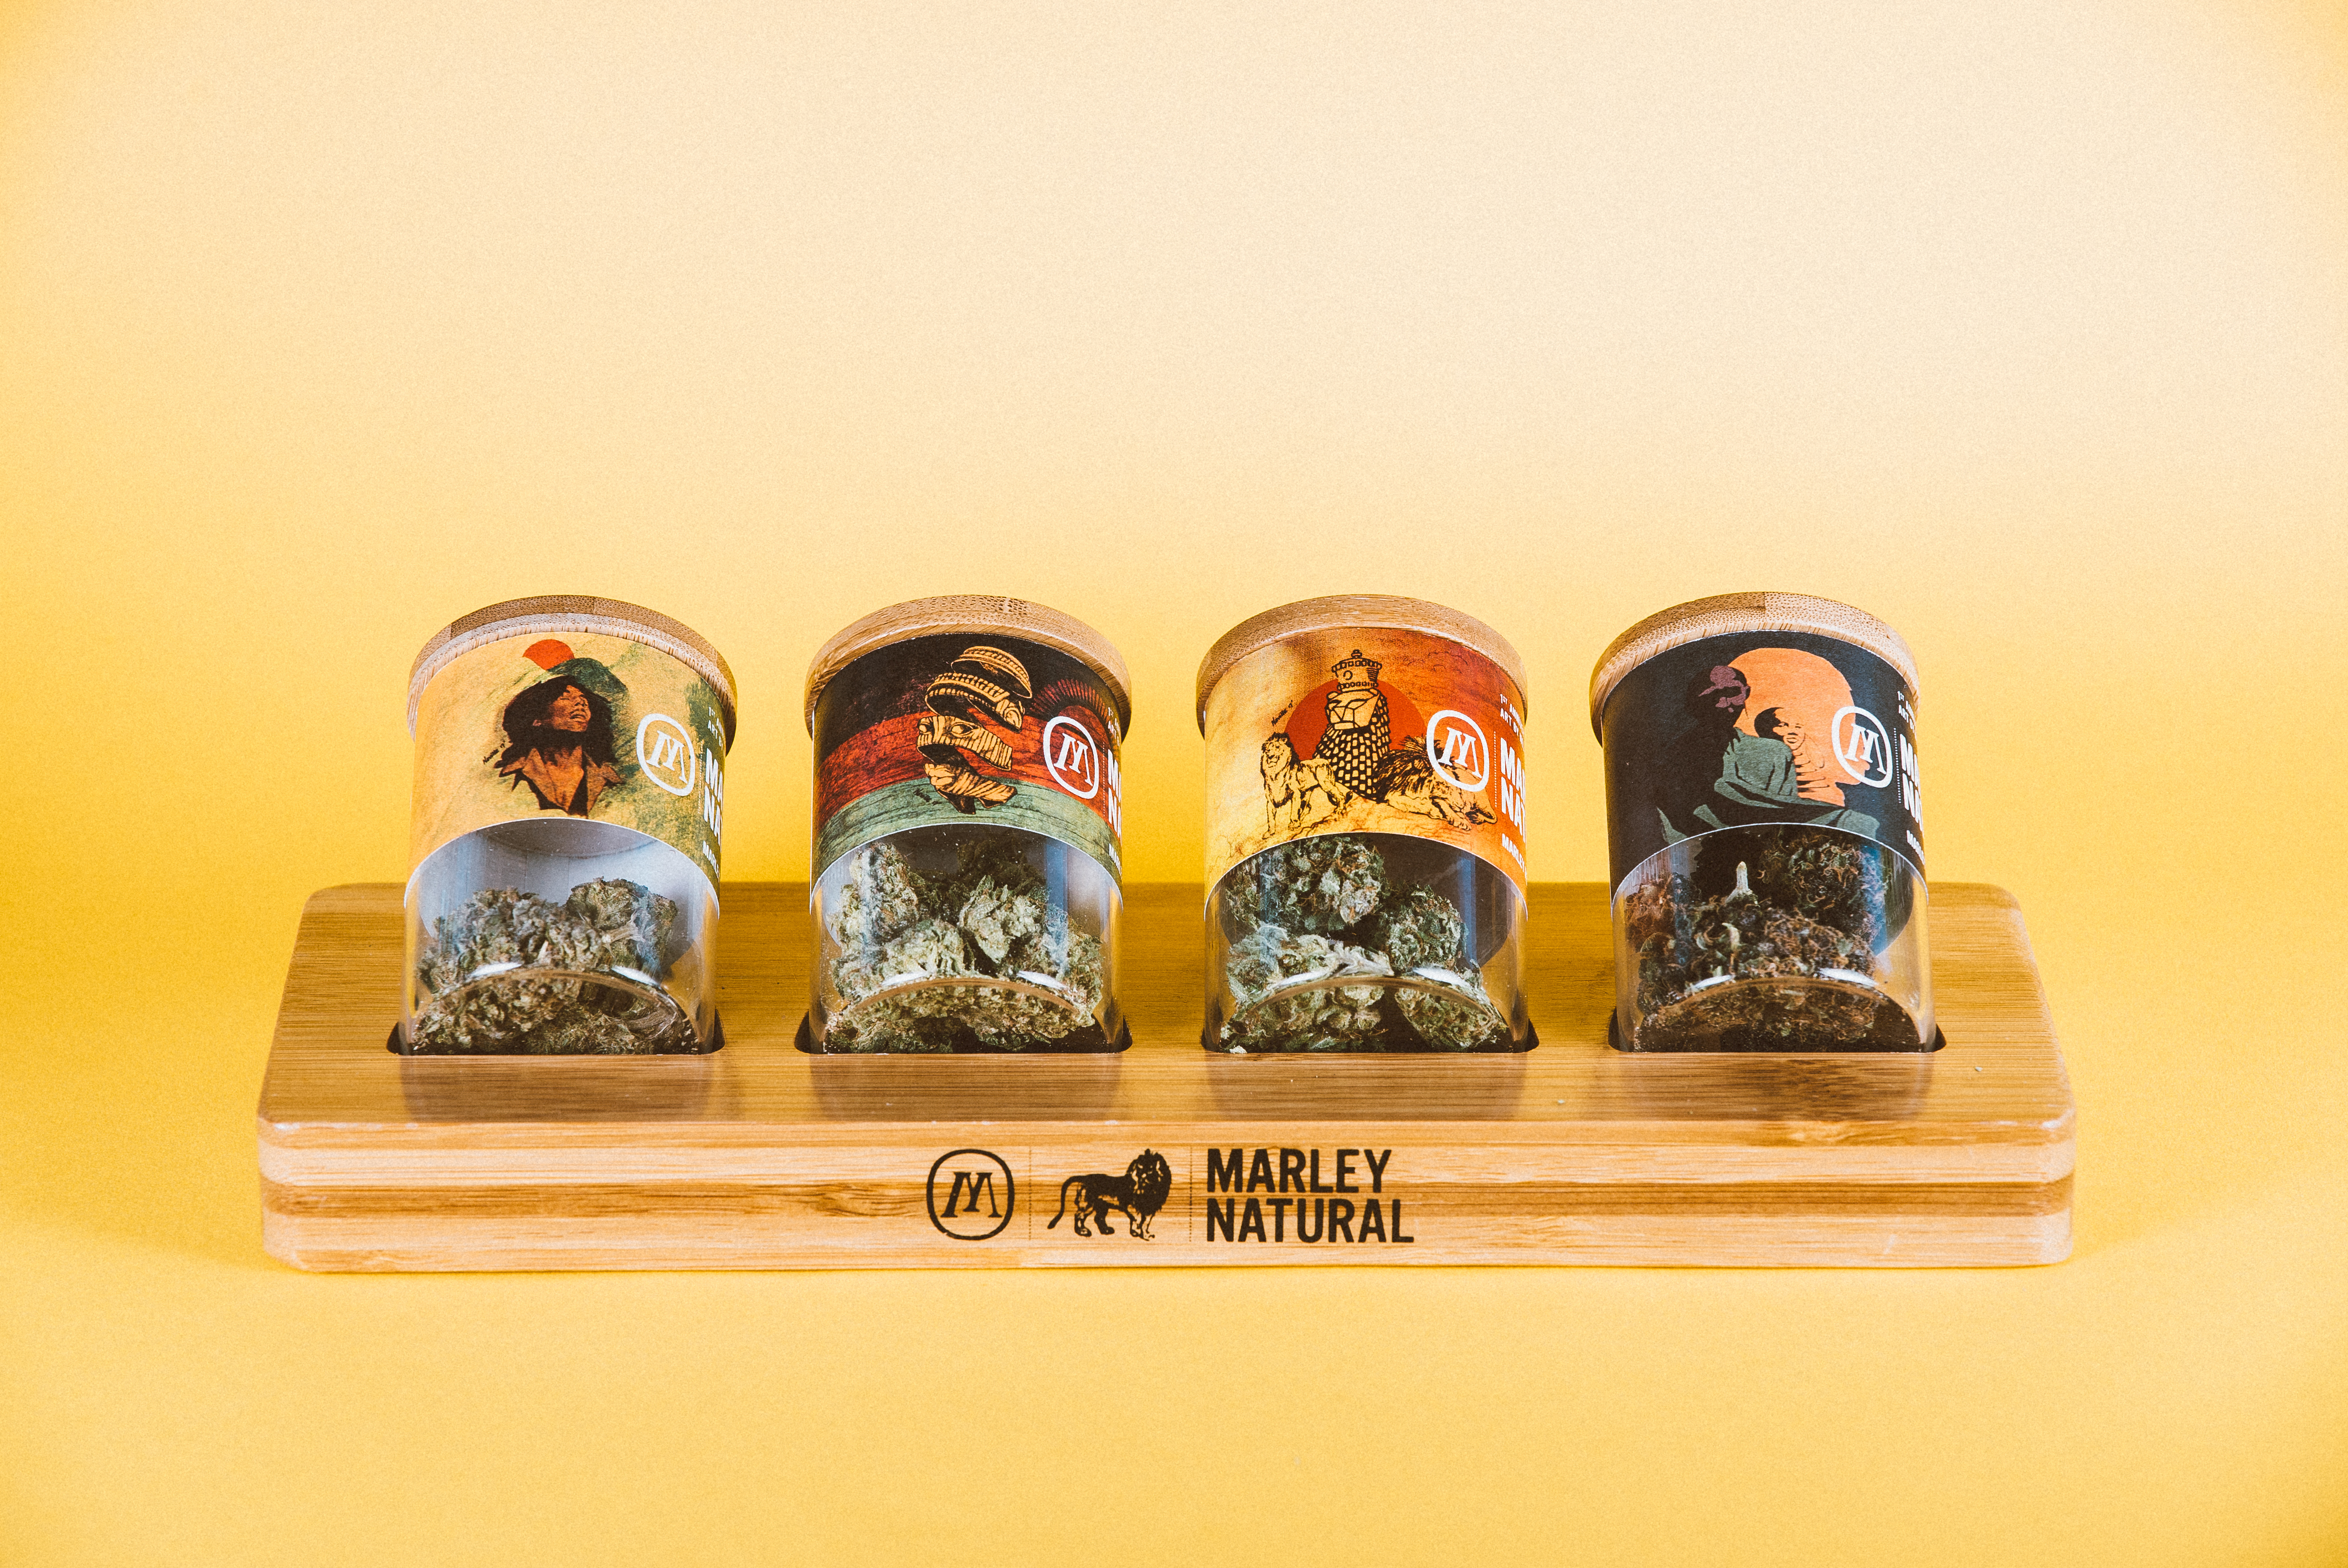 Marley Natural is the official Bob Marley cannabis brand, crafted with deep respect for Bob Marley's legacy and belief in the positive potential of the herb to heal and inspire us. (Photo: Business Wire)